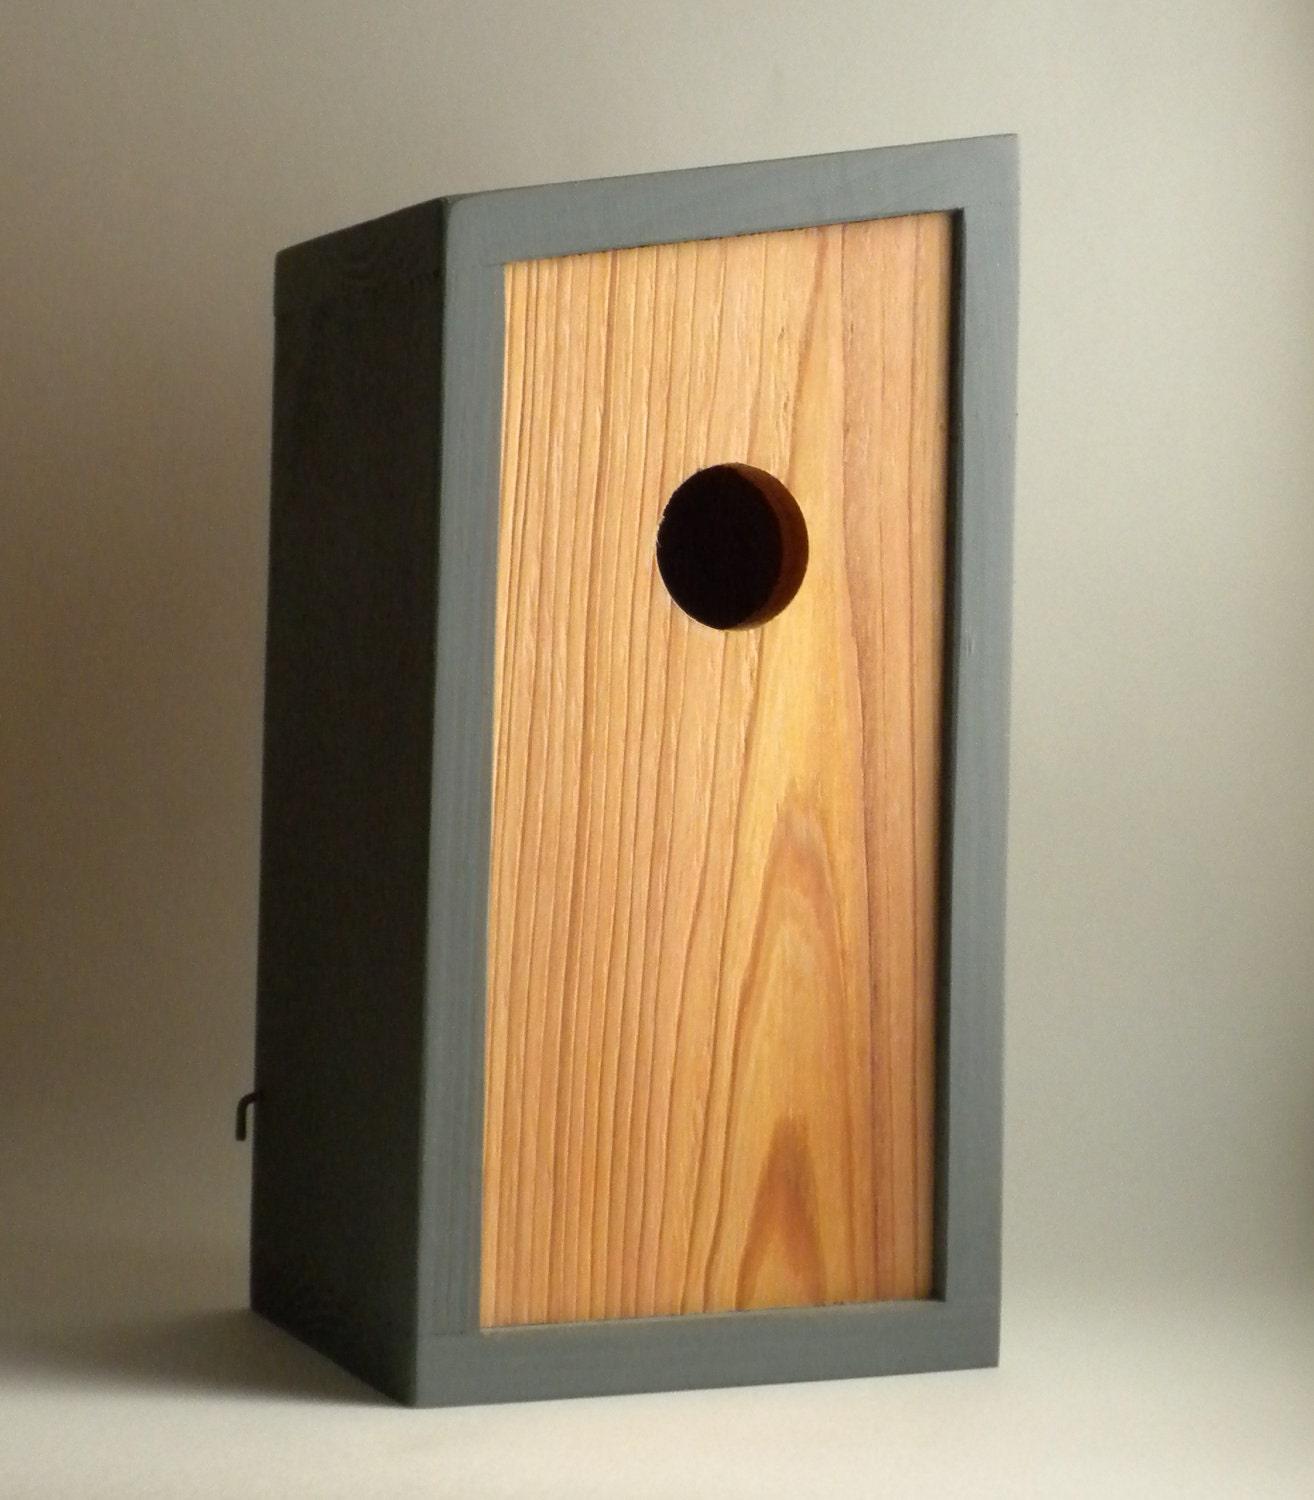 Birdhouse modern minimalist the obtuse birdhouse for The modern minimalist